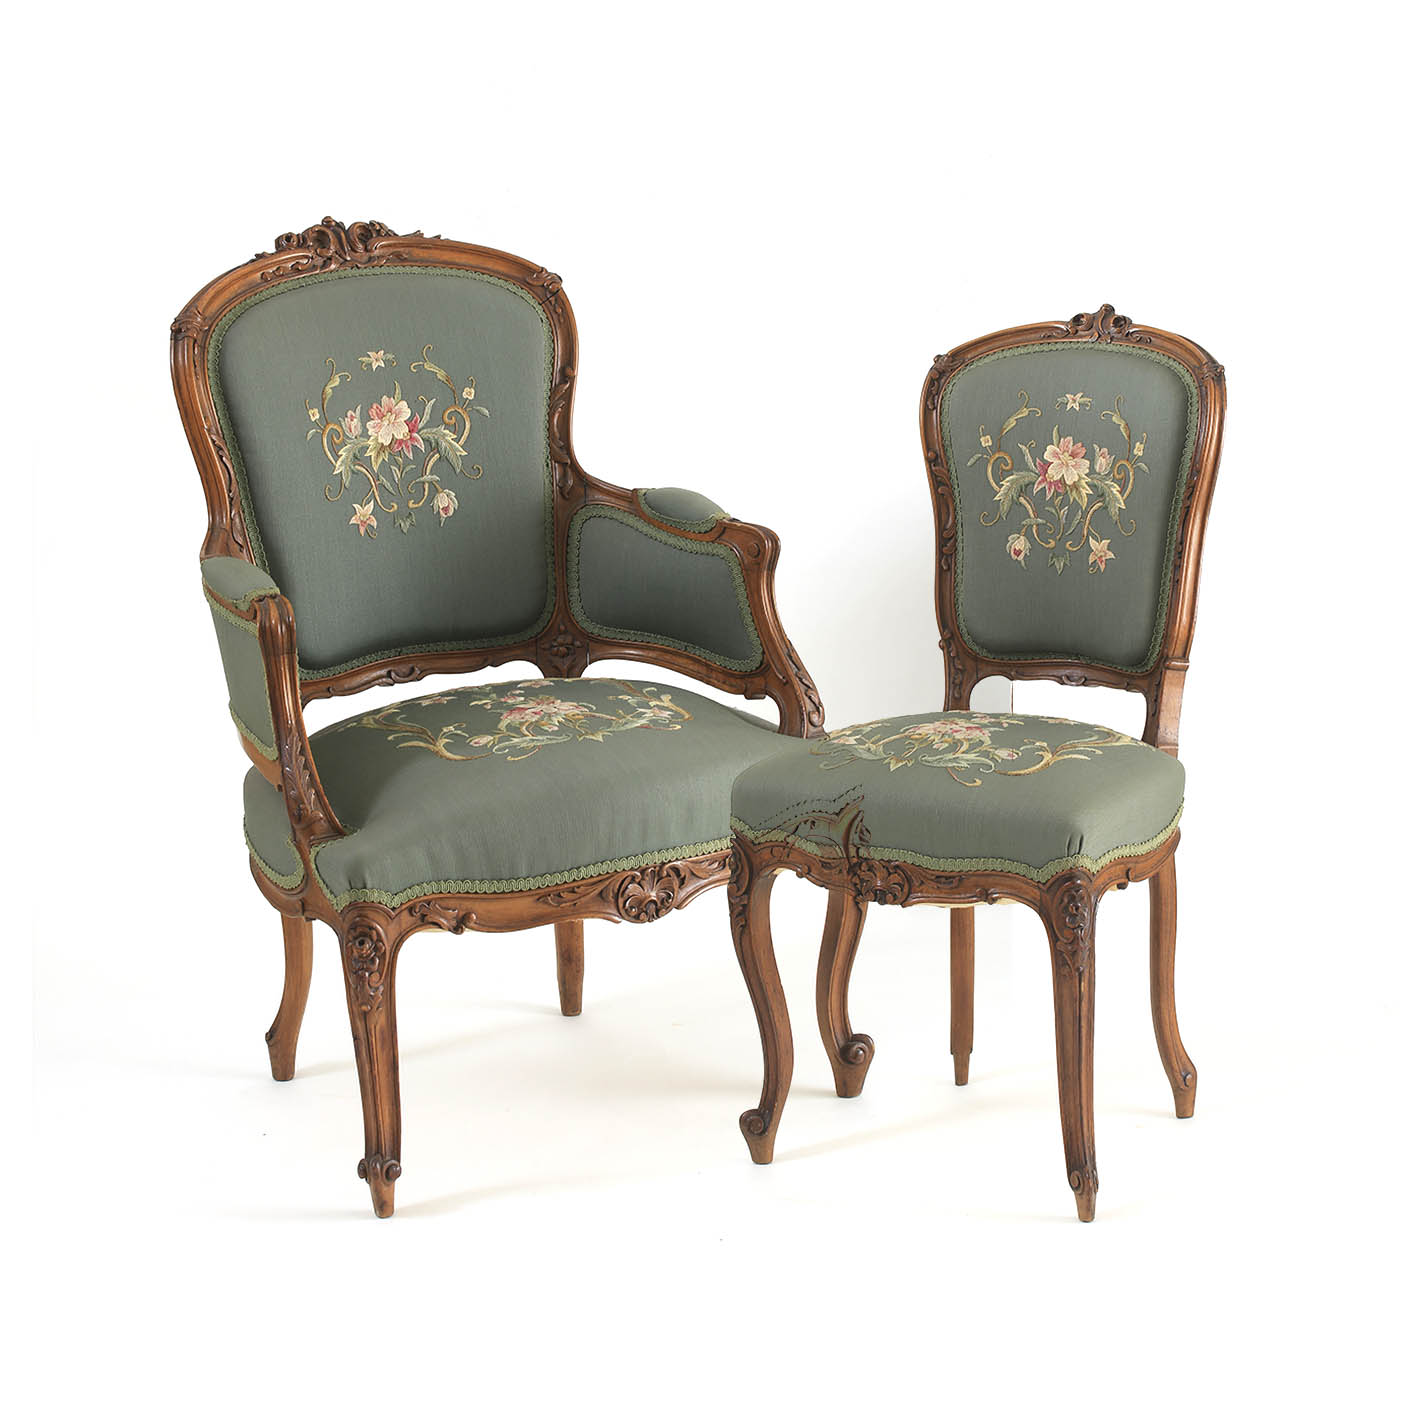 gentlemans chair west elm covers a louis xv style carved walnut and lady